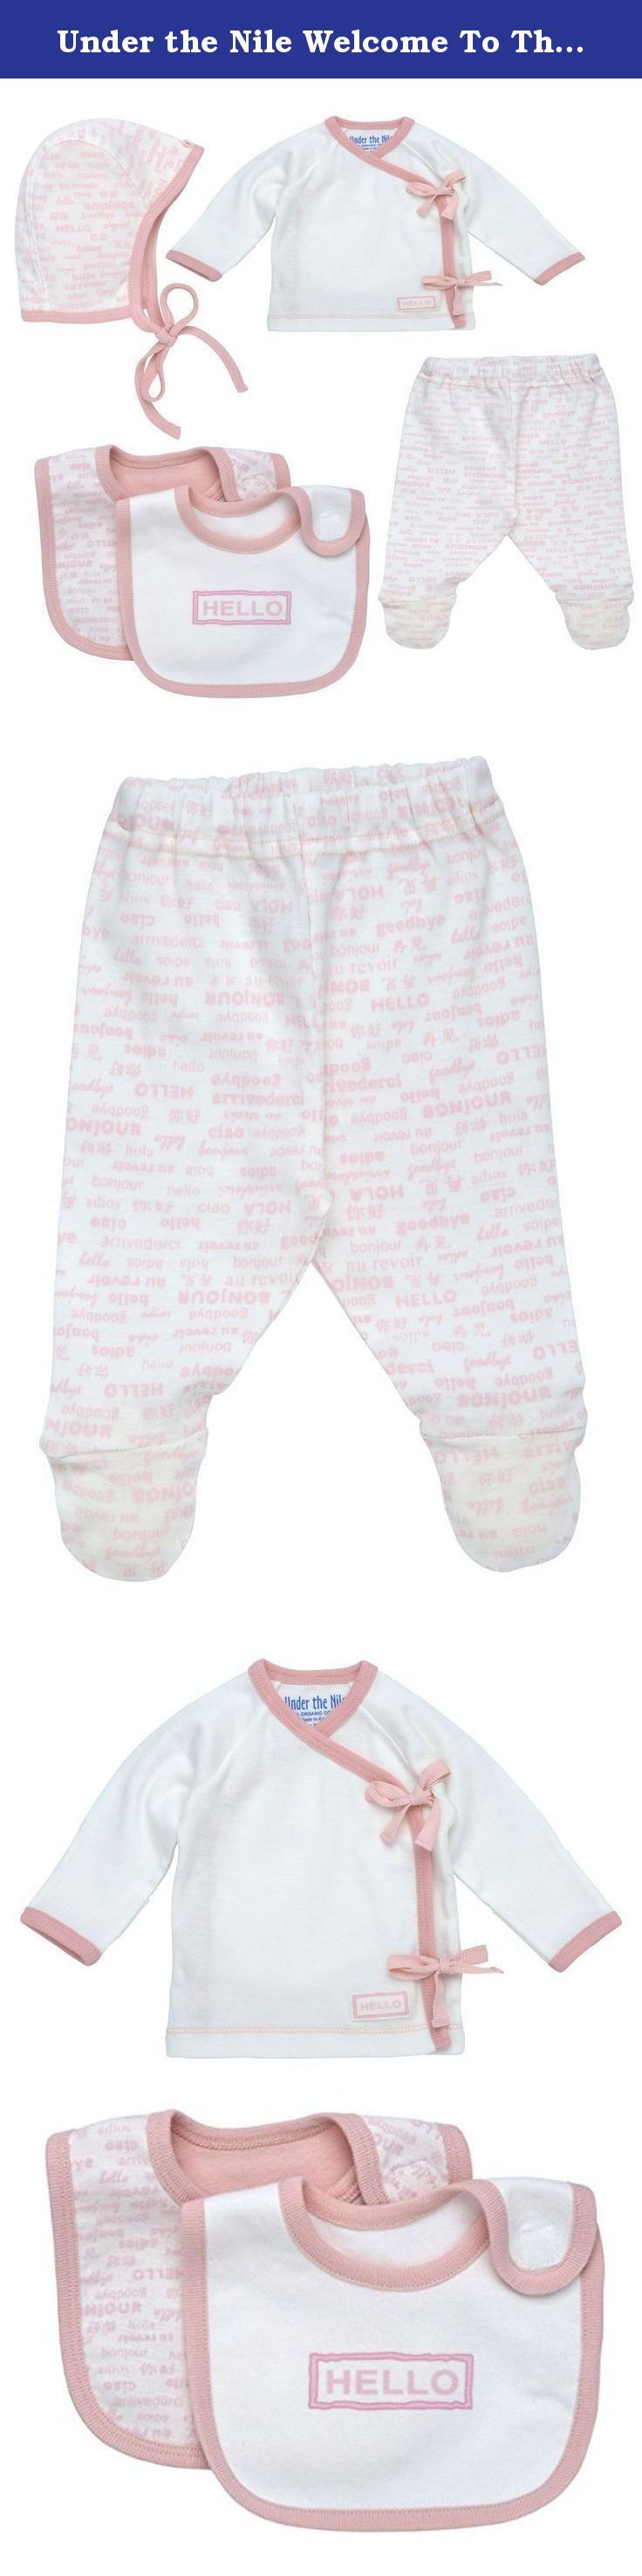 "Under the Nile Welcome To The World Layette Set-Blush (Pink)-Newborn. Side Tie Layette Set: This set is an essential basic outfit for any baby! The Hello Goodbye collection was developed especially for newborn babies; clothing that is designed to fit your baby for the trip home from the hospital. This cute print says ""Hello Goodbye"" in five languages: English, Spanish, Italian, French, and Chinese. A great take me home gift that includes a heart shaped card for baby's name and date of…"